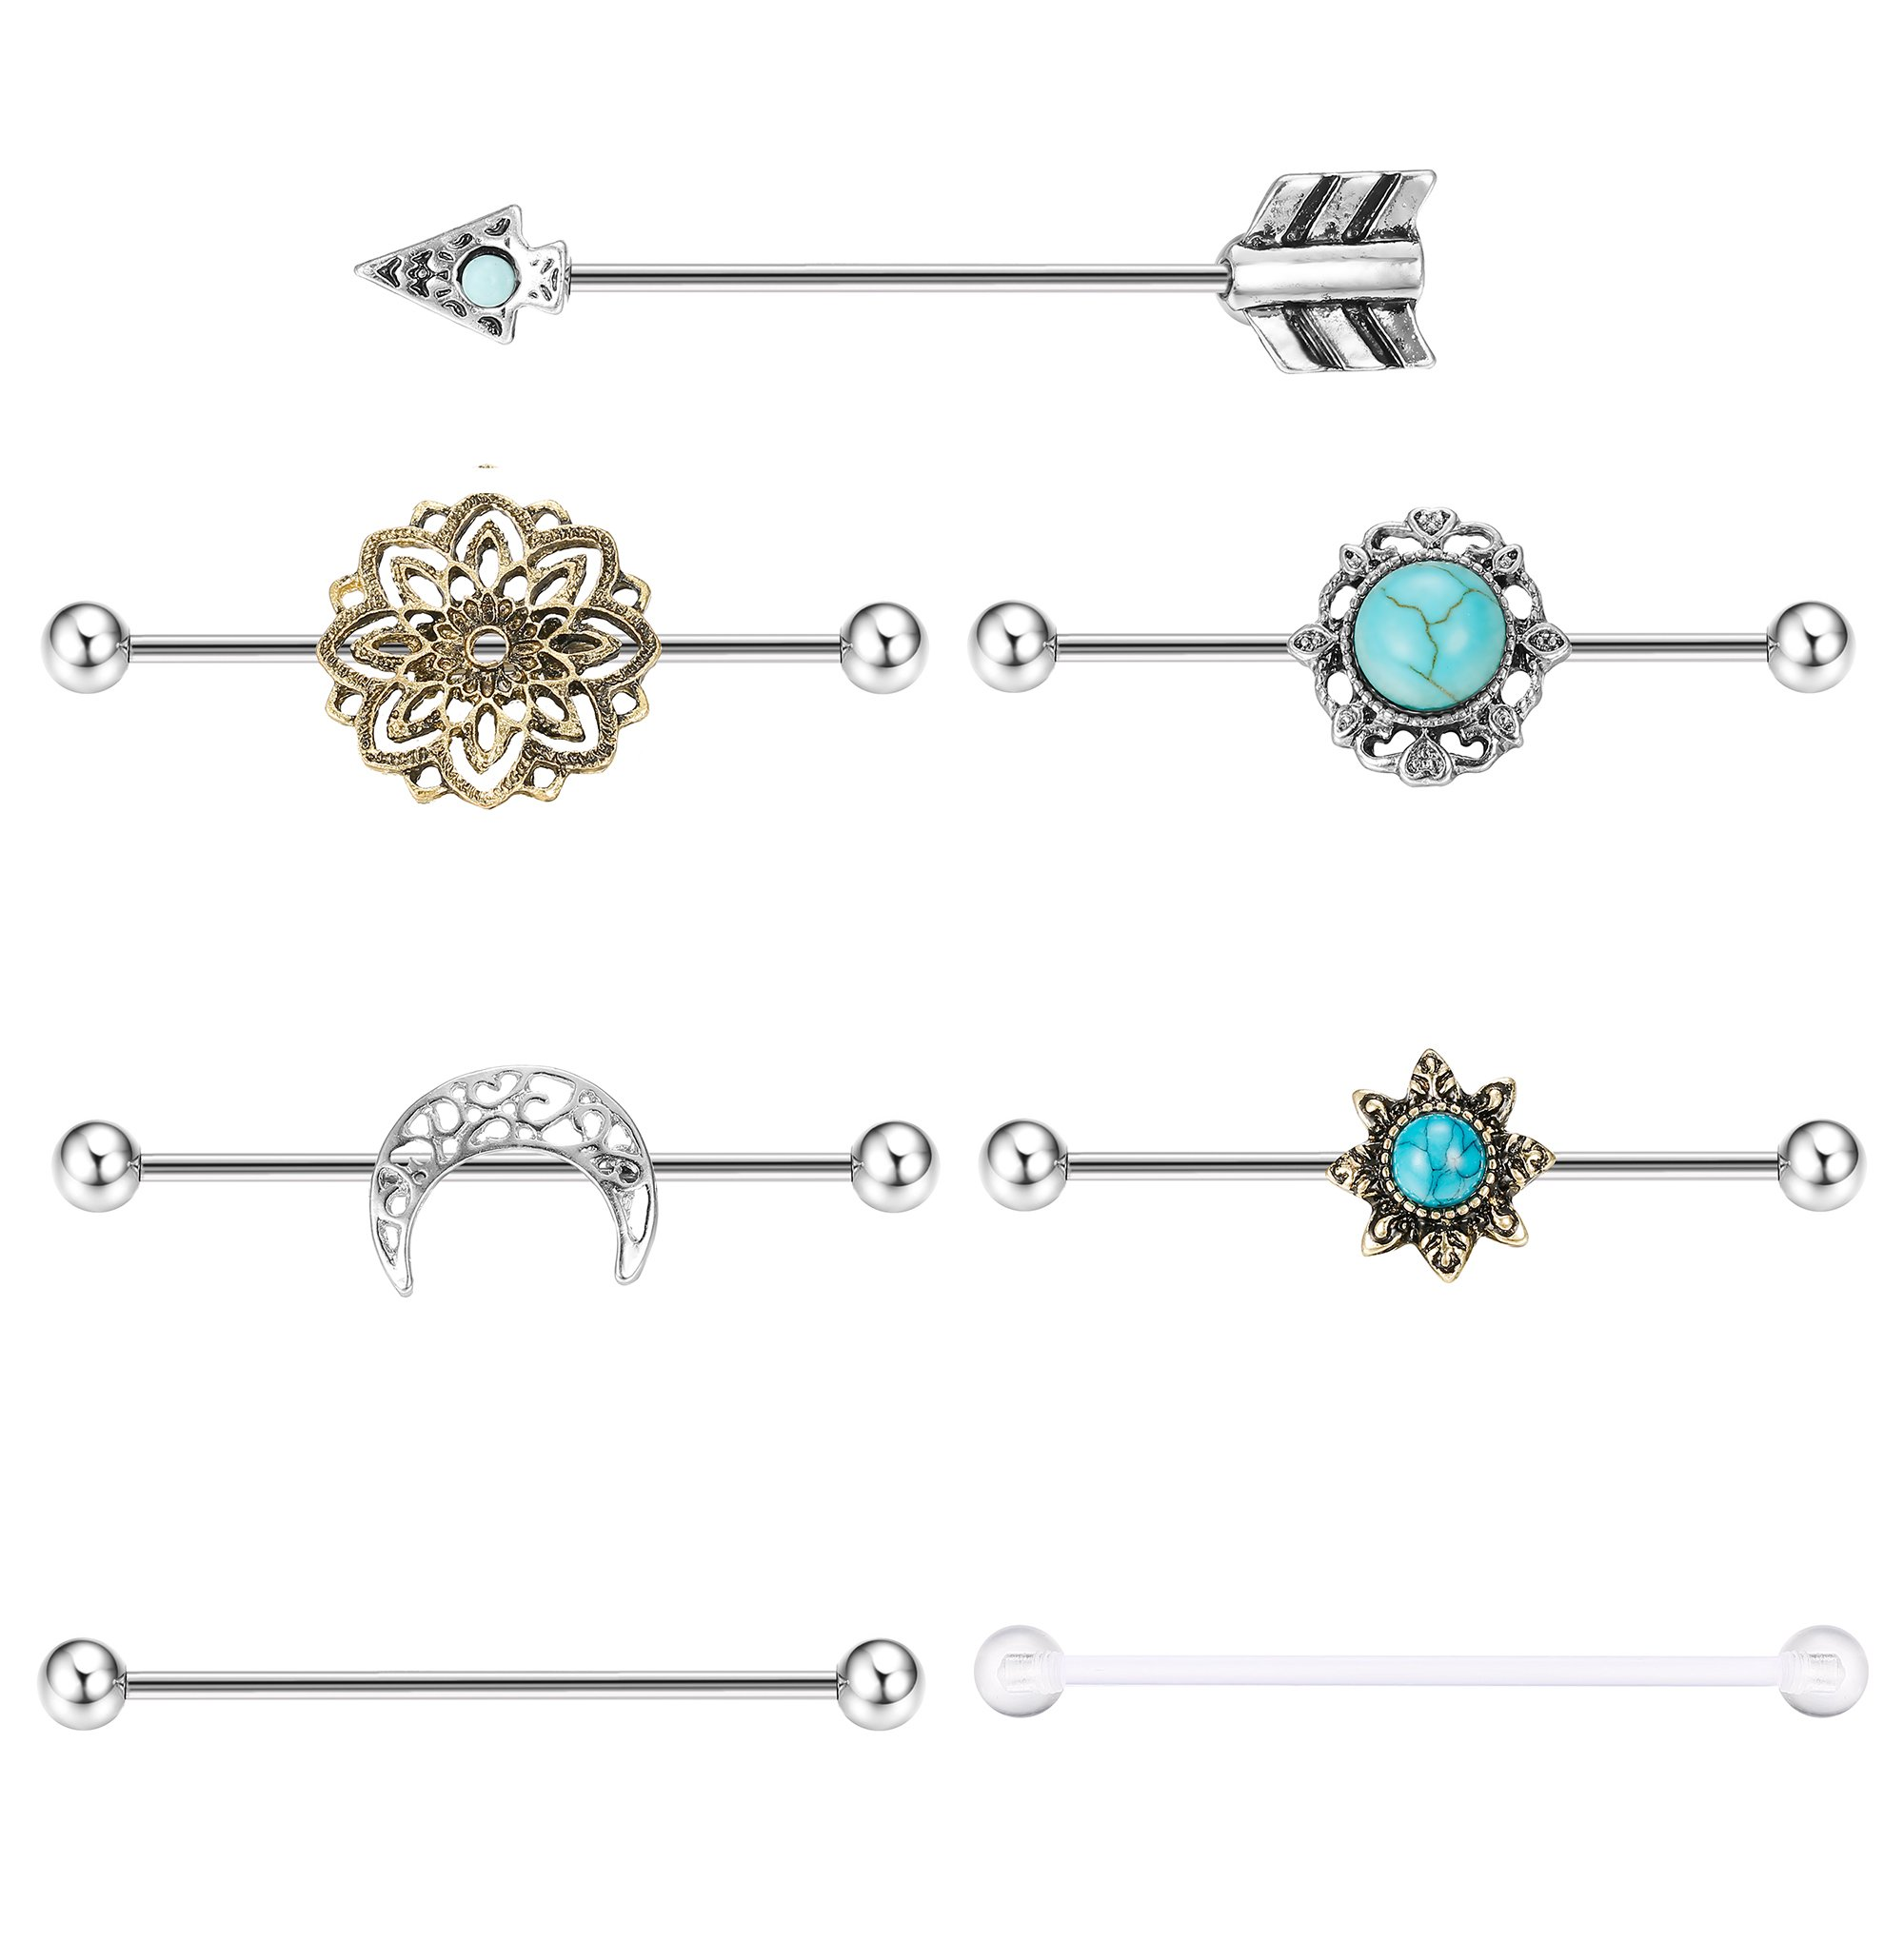 Milacolato 7PCS Industrial Barbell Earring Cartilage Piercing 14G Surgical Steel Turquoise Industrial Piercing Jewelry